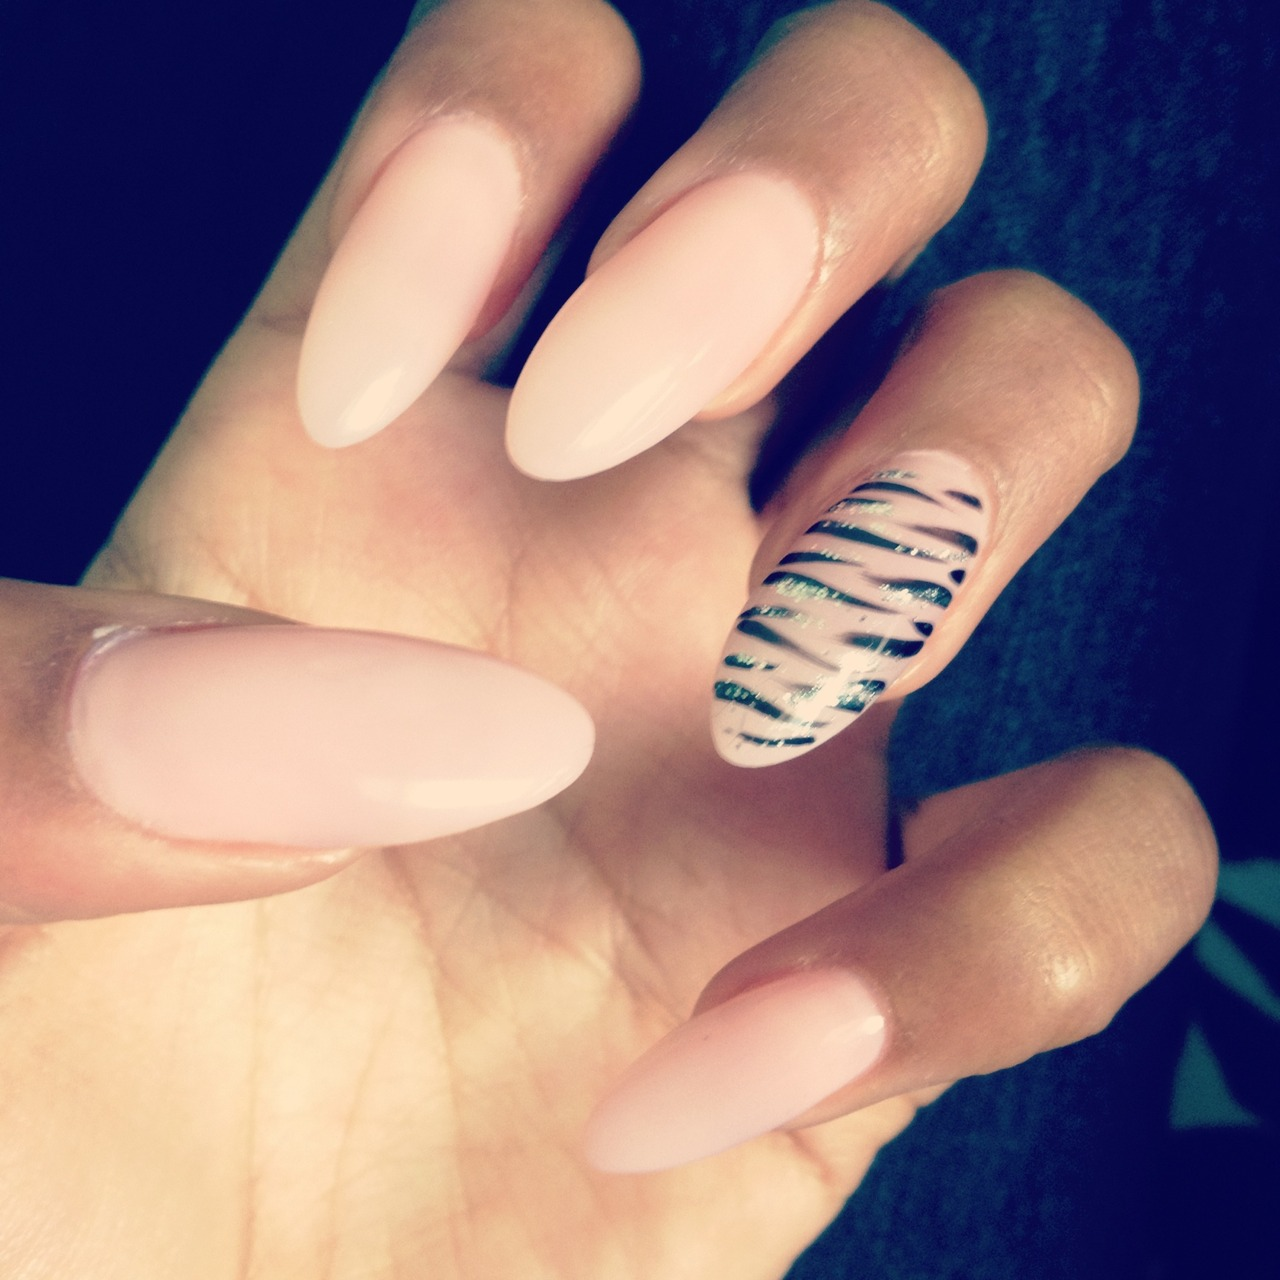 tumblr nails 2013 wwwpixsharkcom images galleries